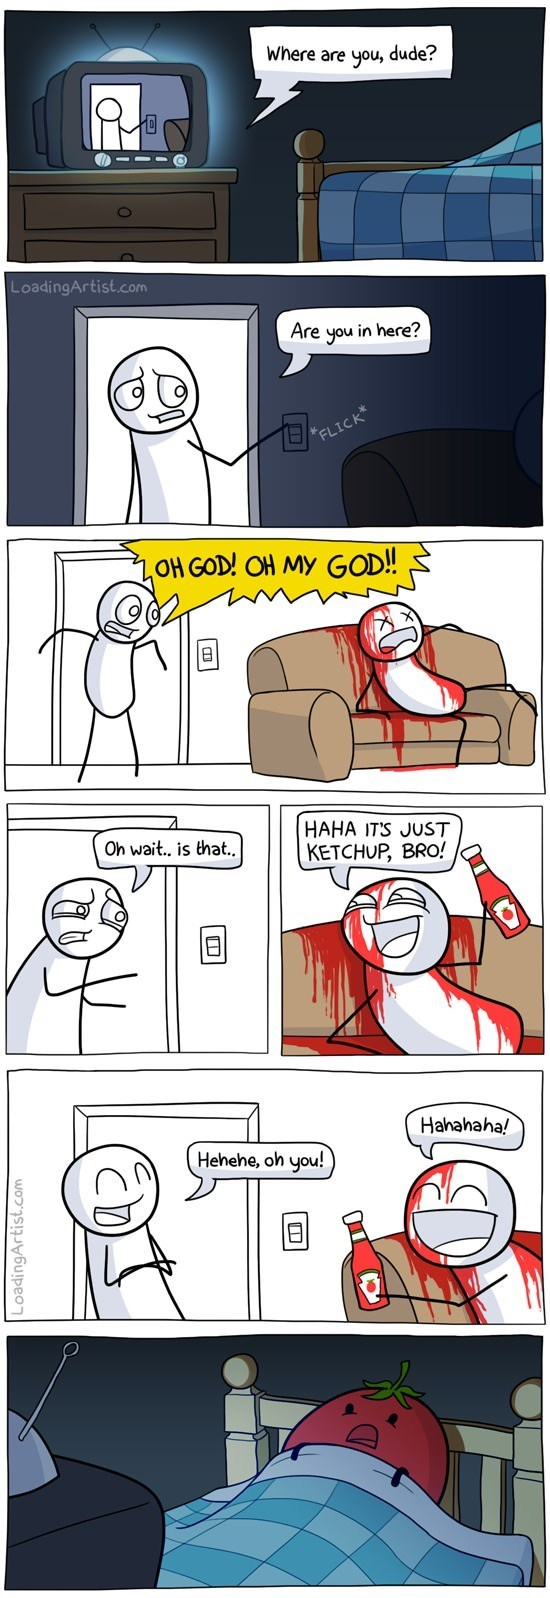 funny-web-comics-your-dreams-can-catch-up-to-you